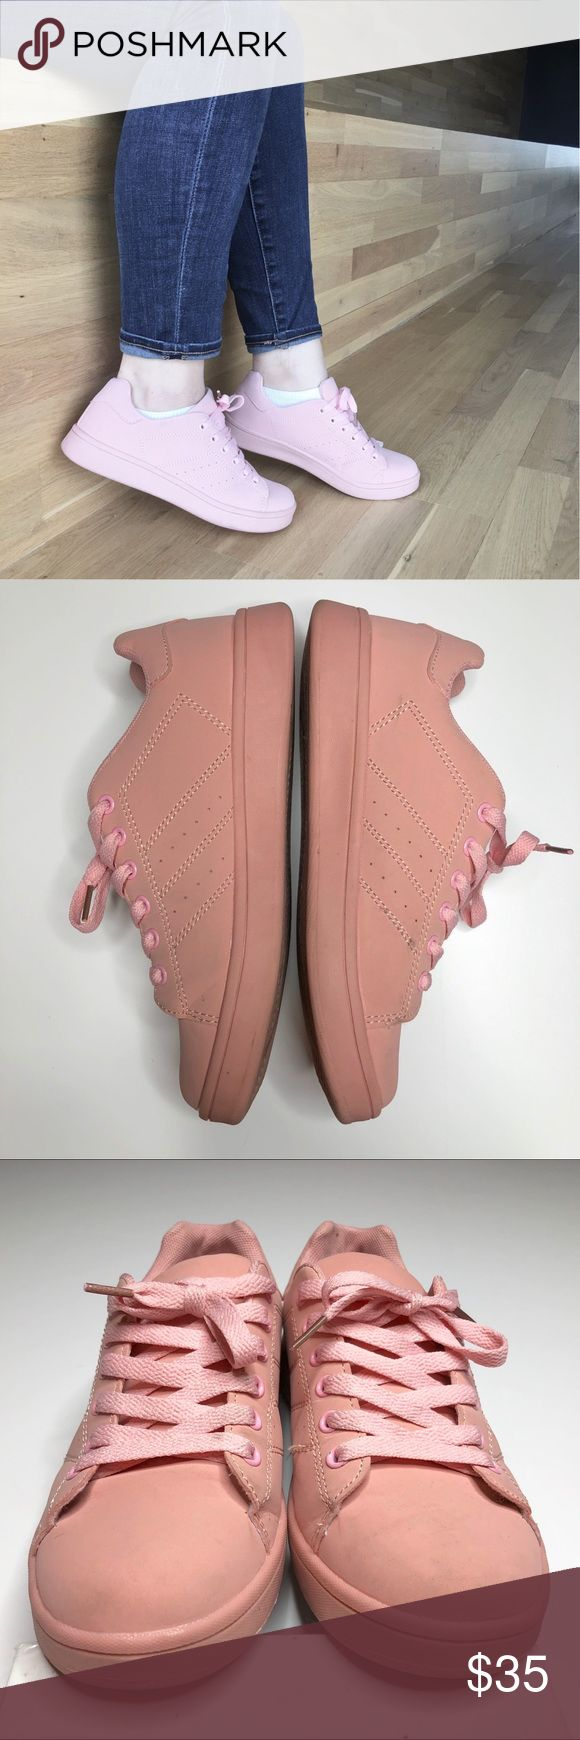 Millennial Pink Sneakers Pink lace-up sneakers in faux leather. Light markings in areas of high wear, particular toes, as noted. Scratches on one shoe as pictured. Worn twice. Please carefully review each photo before purchase as they are the best descriptors of the item. Price is firm. 10% off bundle of 2. Bundles of 3 or more are negotiable. No trades. First come, first served. Thank you! :) Truffle Collection Shoes Sneakers